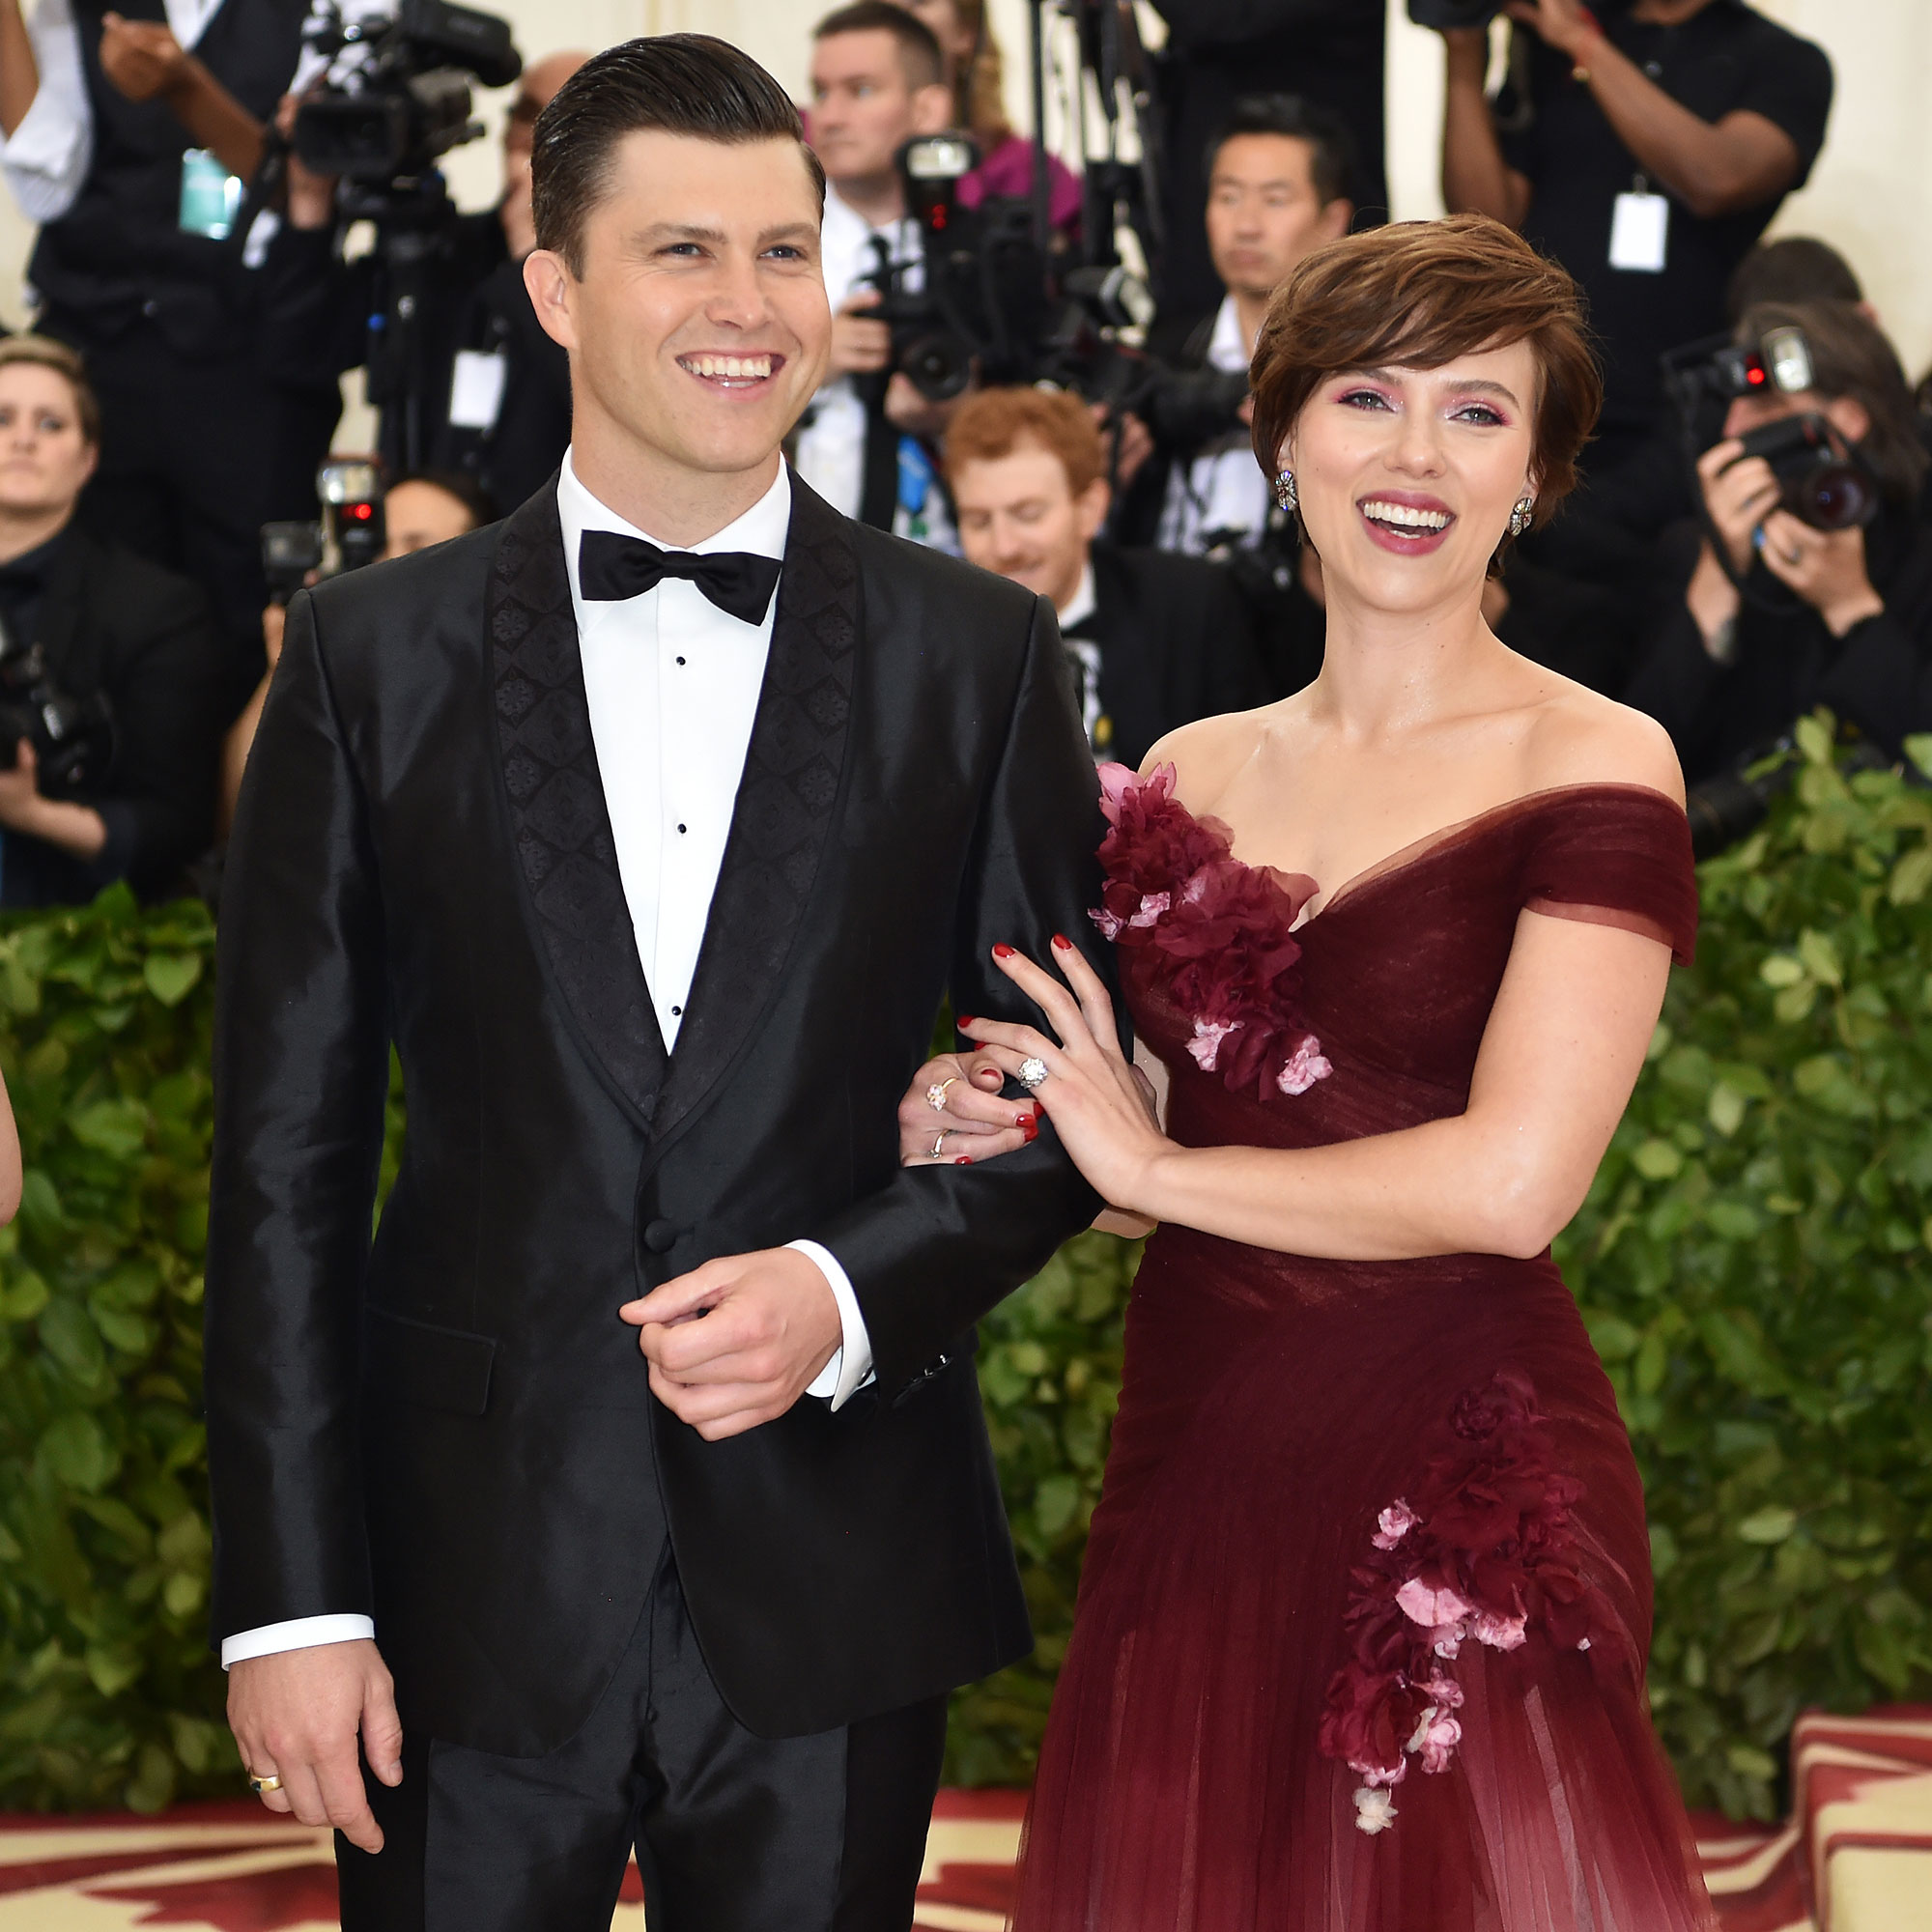 Scarlett Johansson and Colin Jost Relationship Timeline - Scarlett Johansson and Colin Jost arrive for the 2018 Met Gala on May 7, 2018, at the Metropolitan Museum of Art in New York.